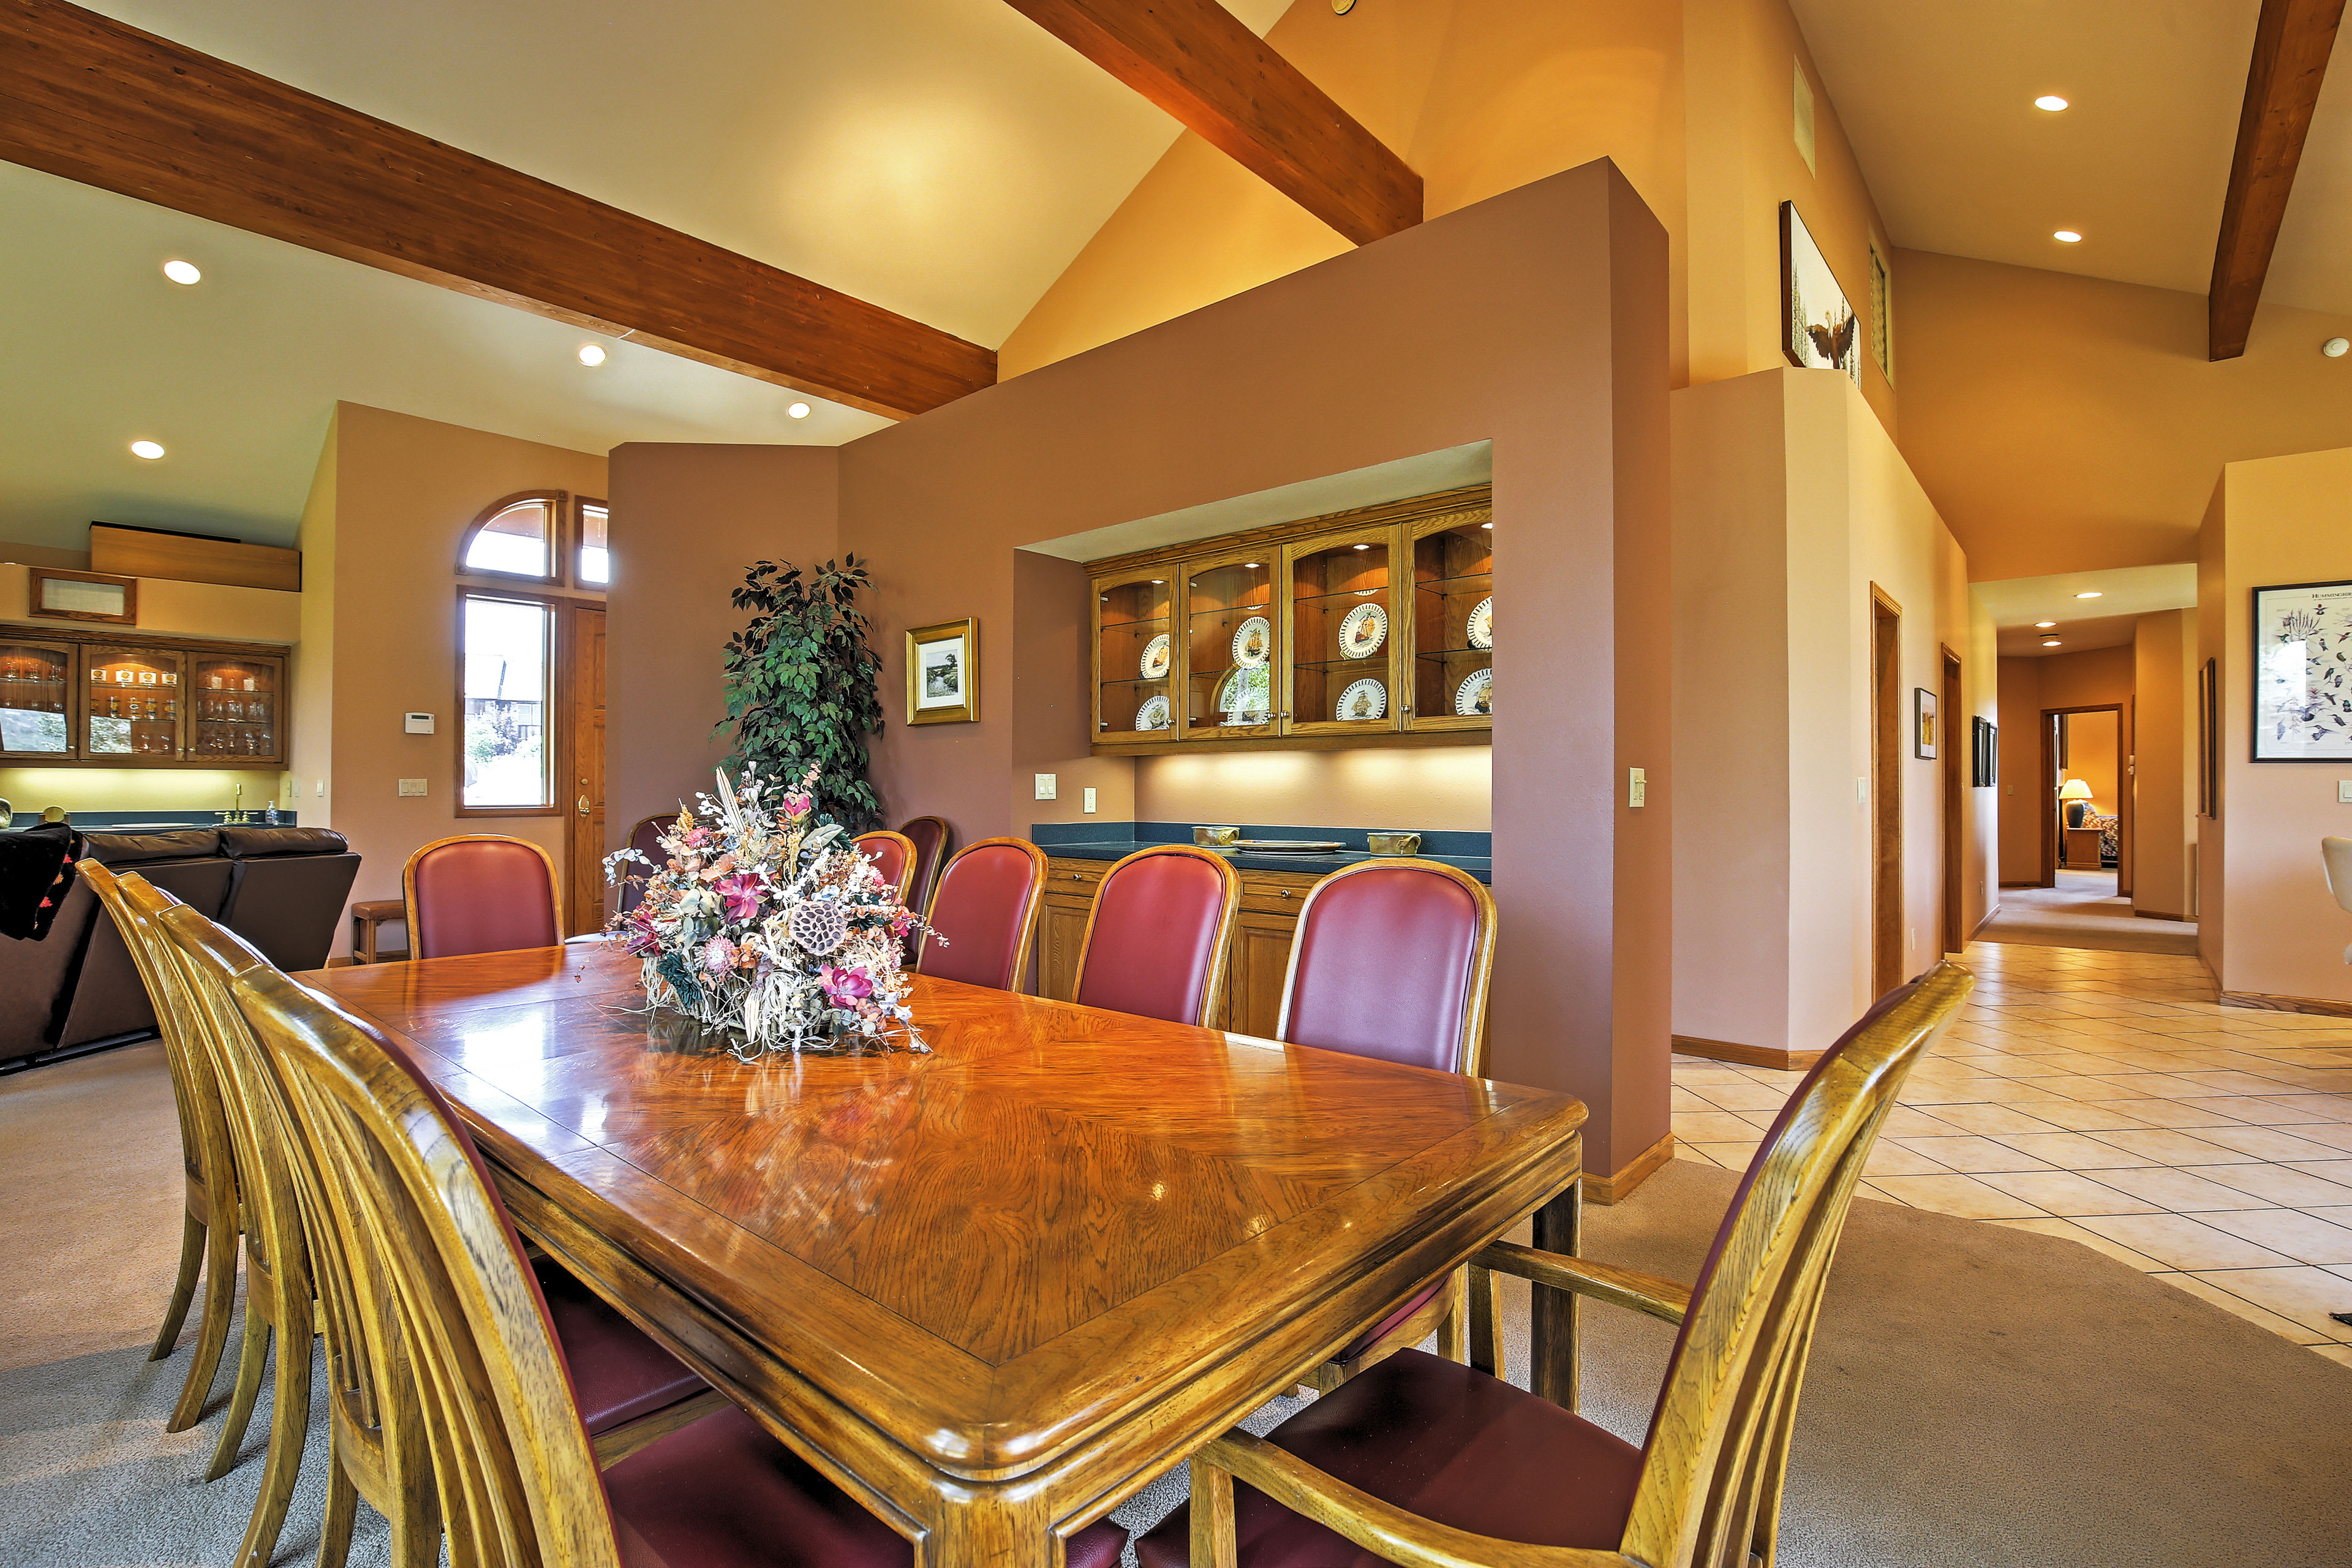 Living Room | Dining Table